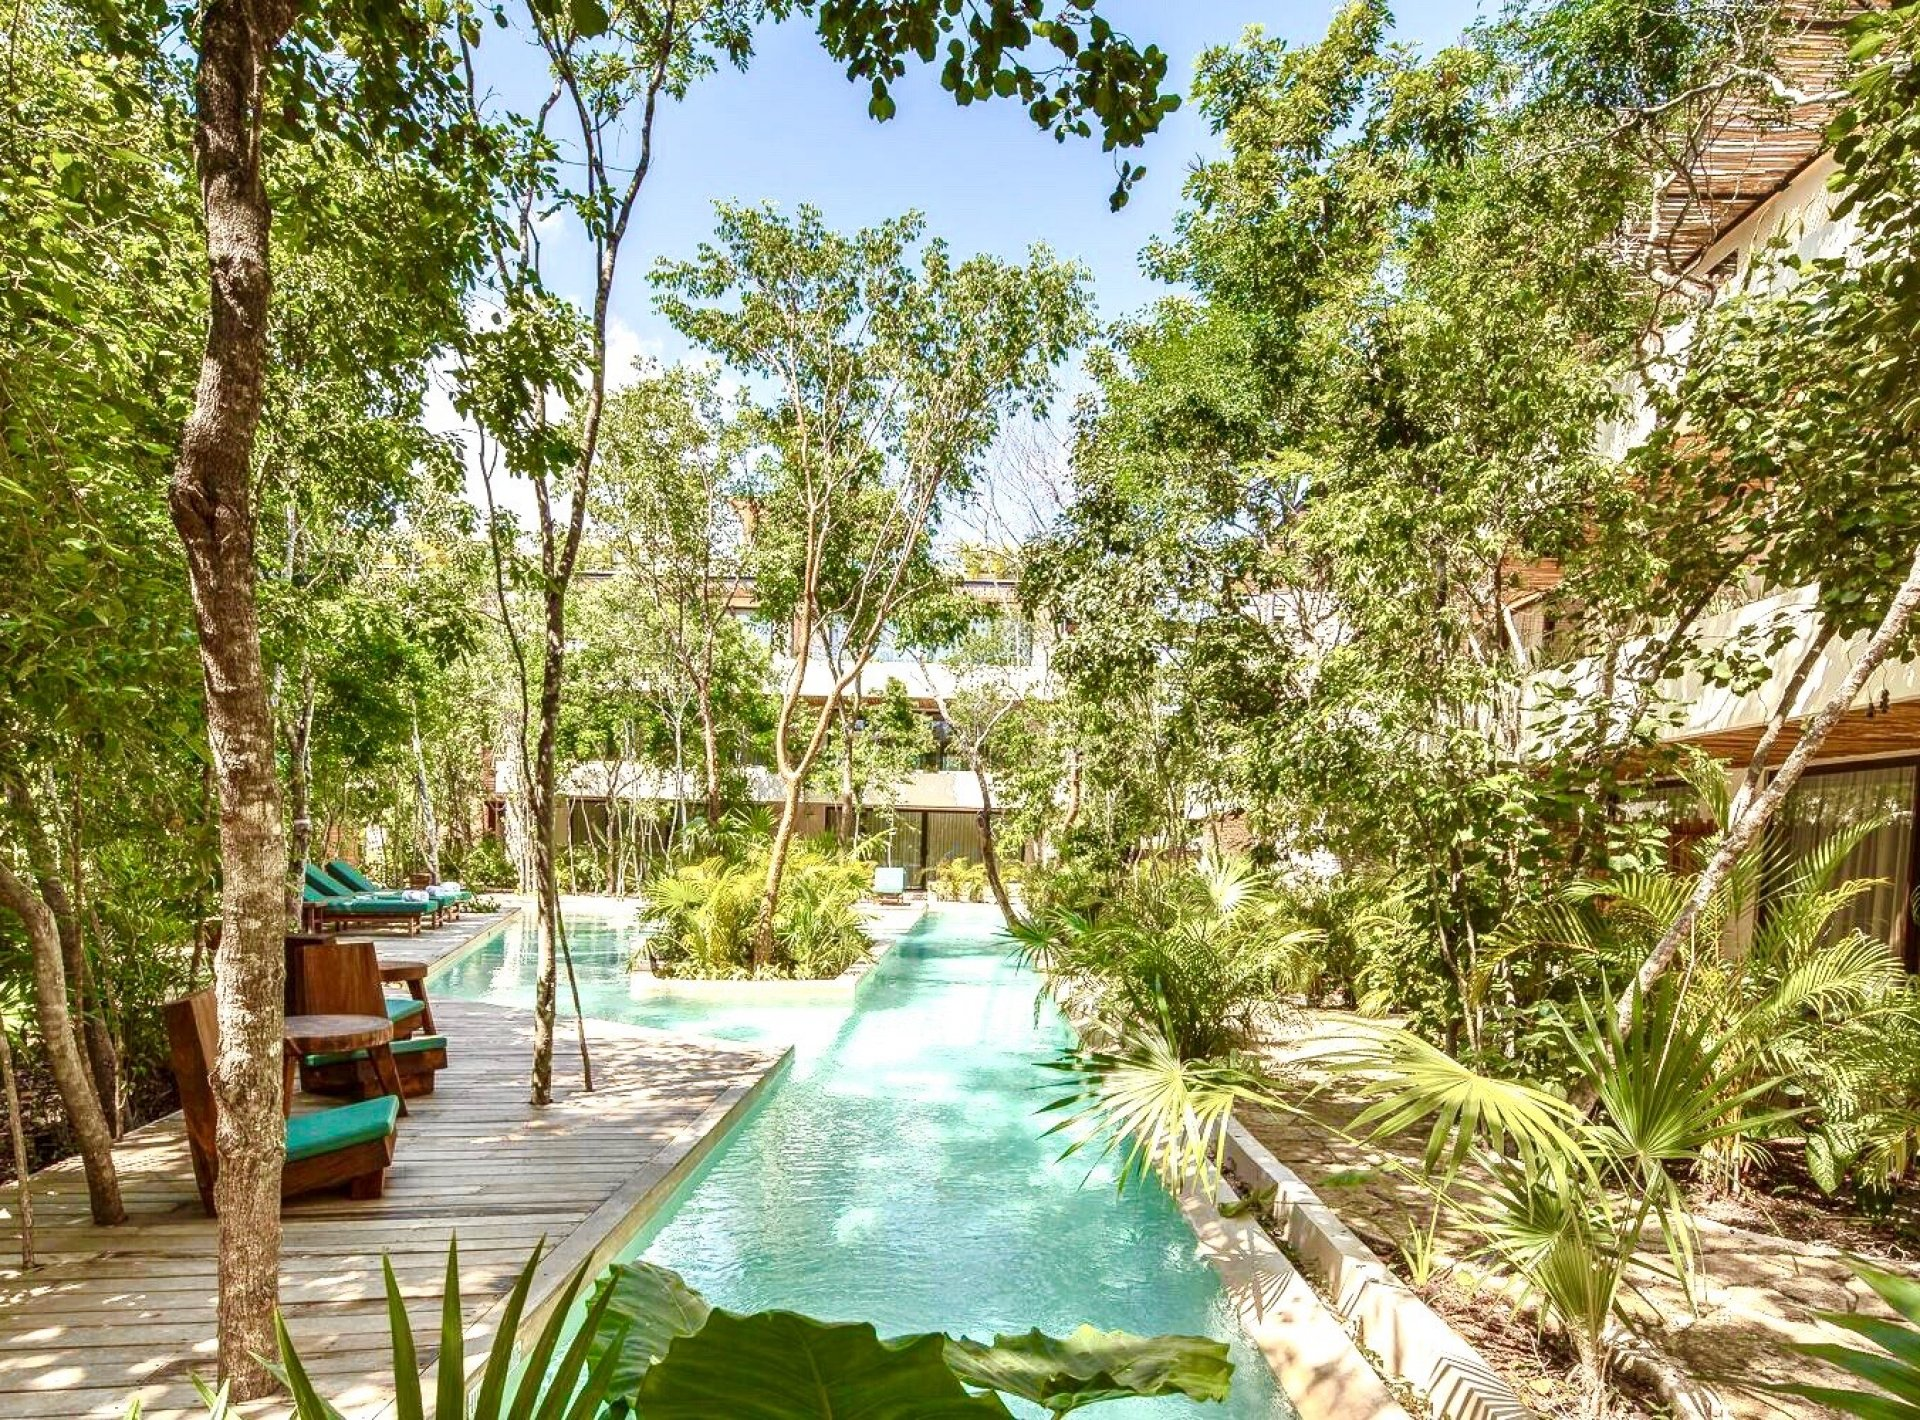 Apartments Tulum Studio Jungle Terrace 14